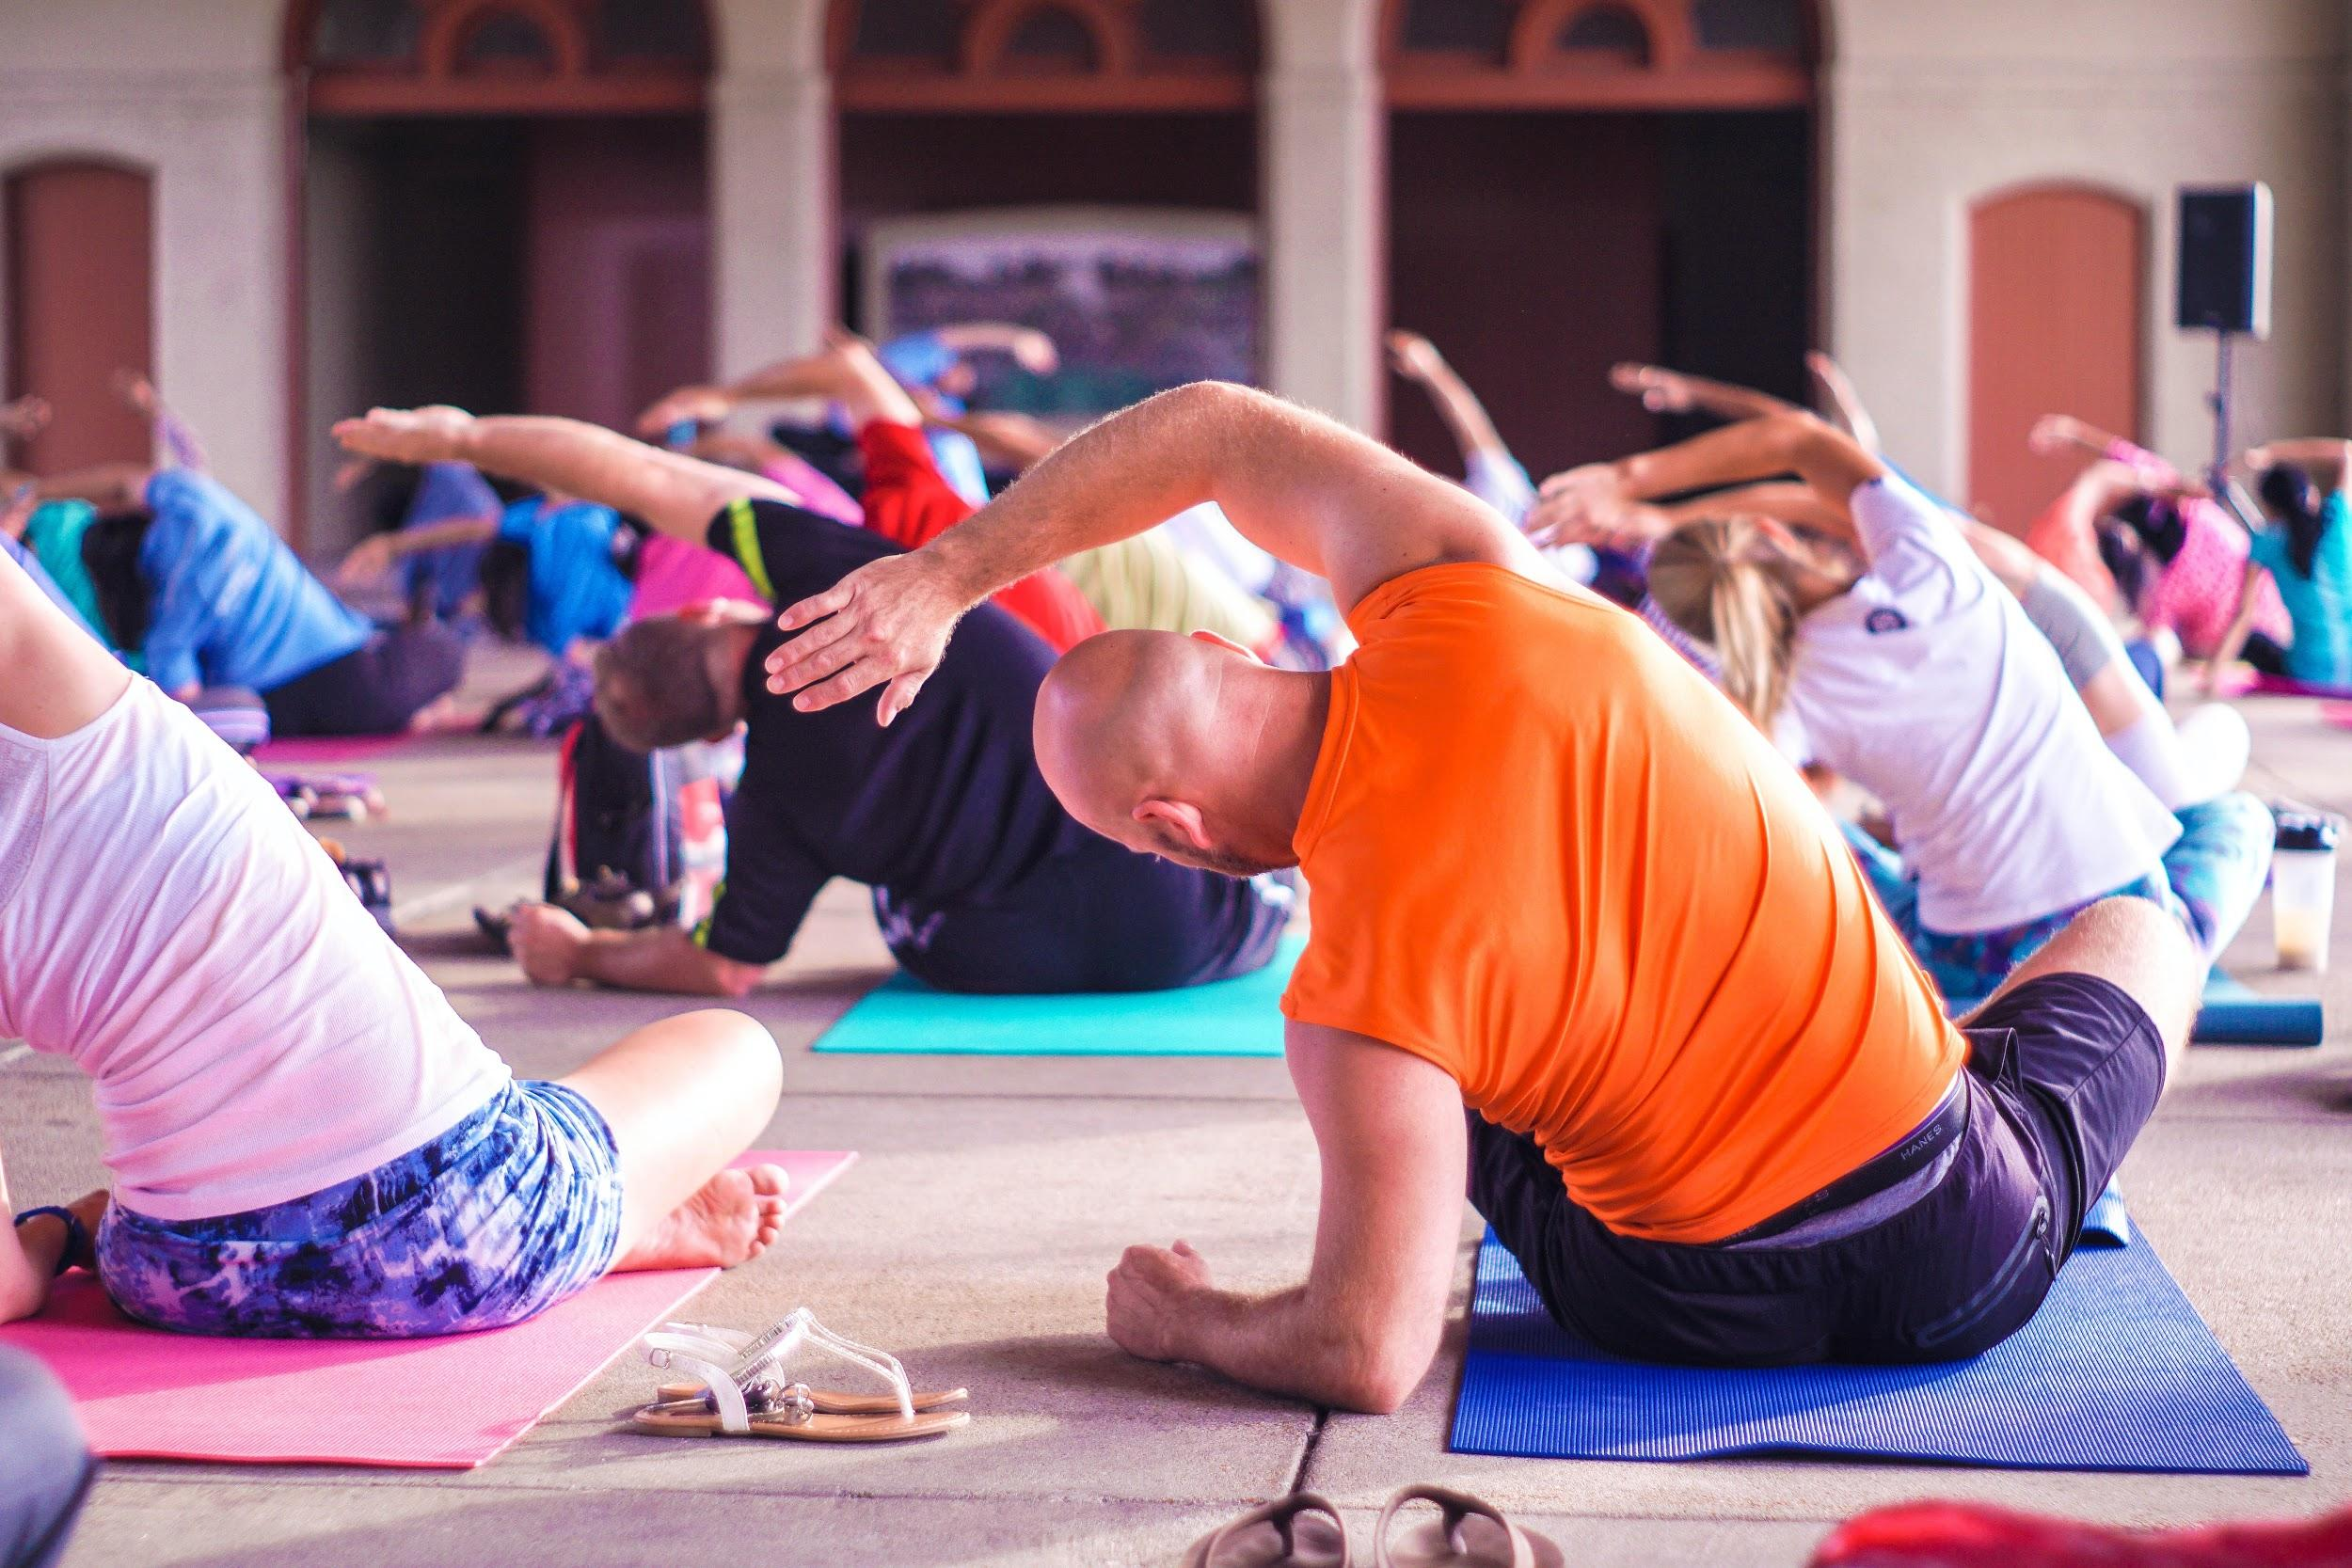 A group of people are shown sitting on yoga mats and participating in a stretching exercise.